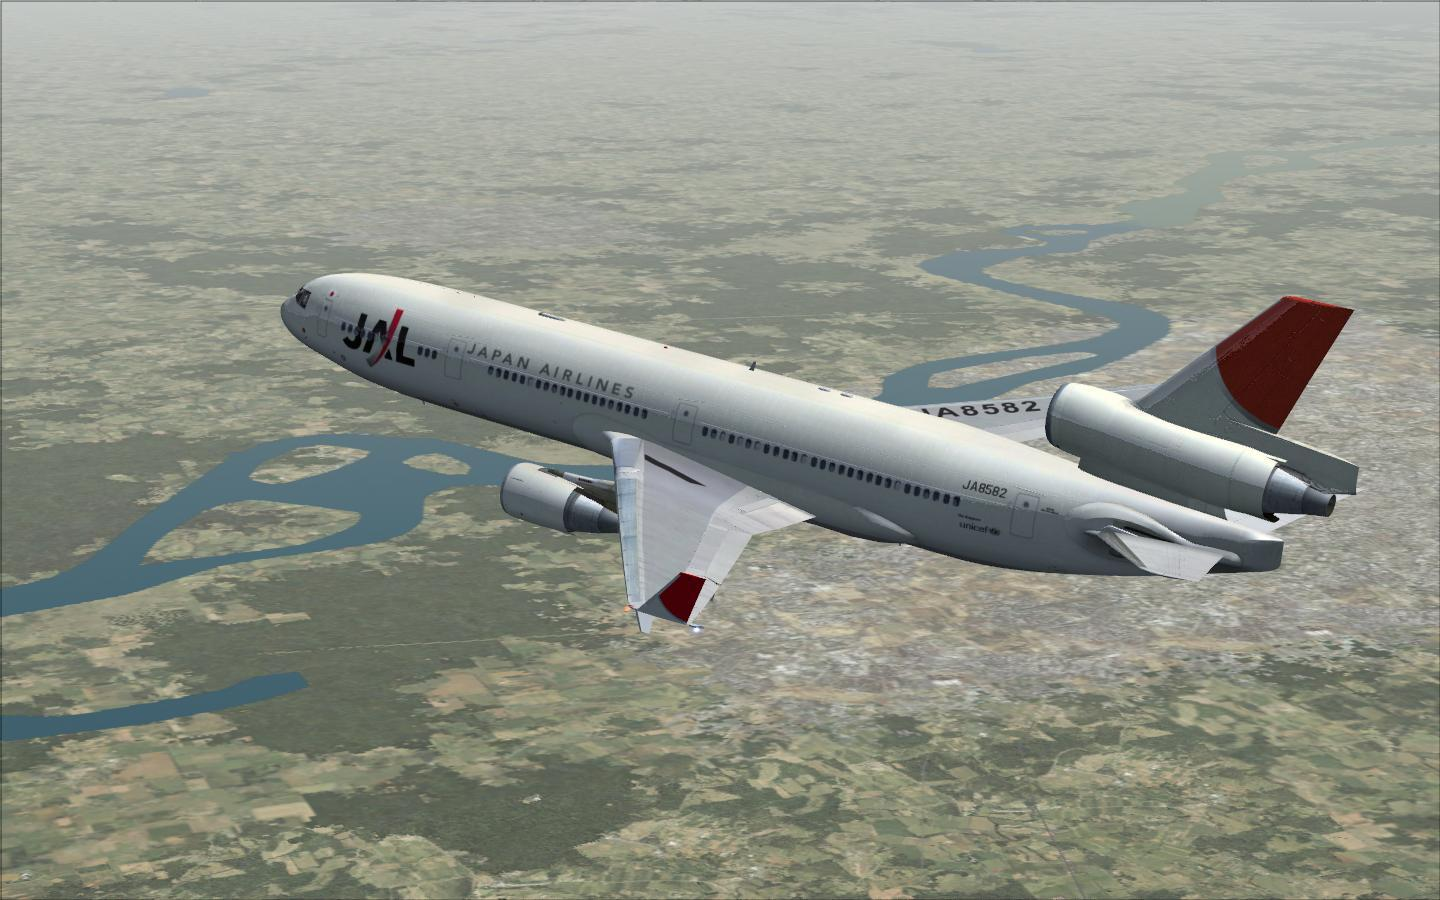 JAL livery needed for Overland MD-11 Fsx Conversion